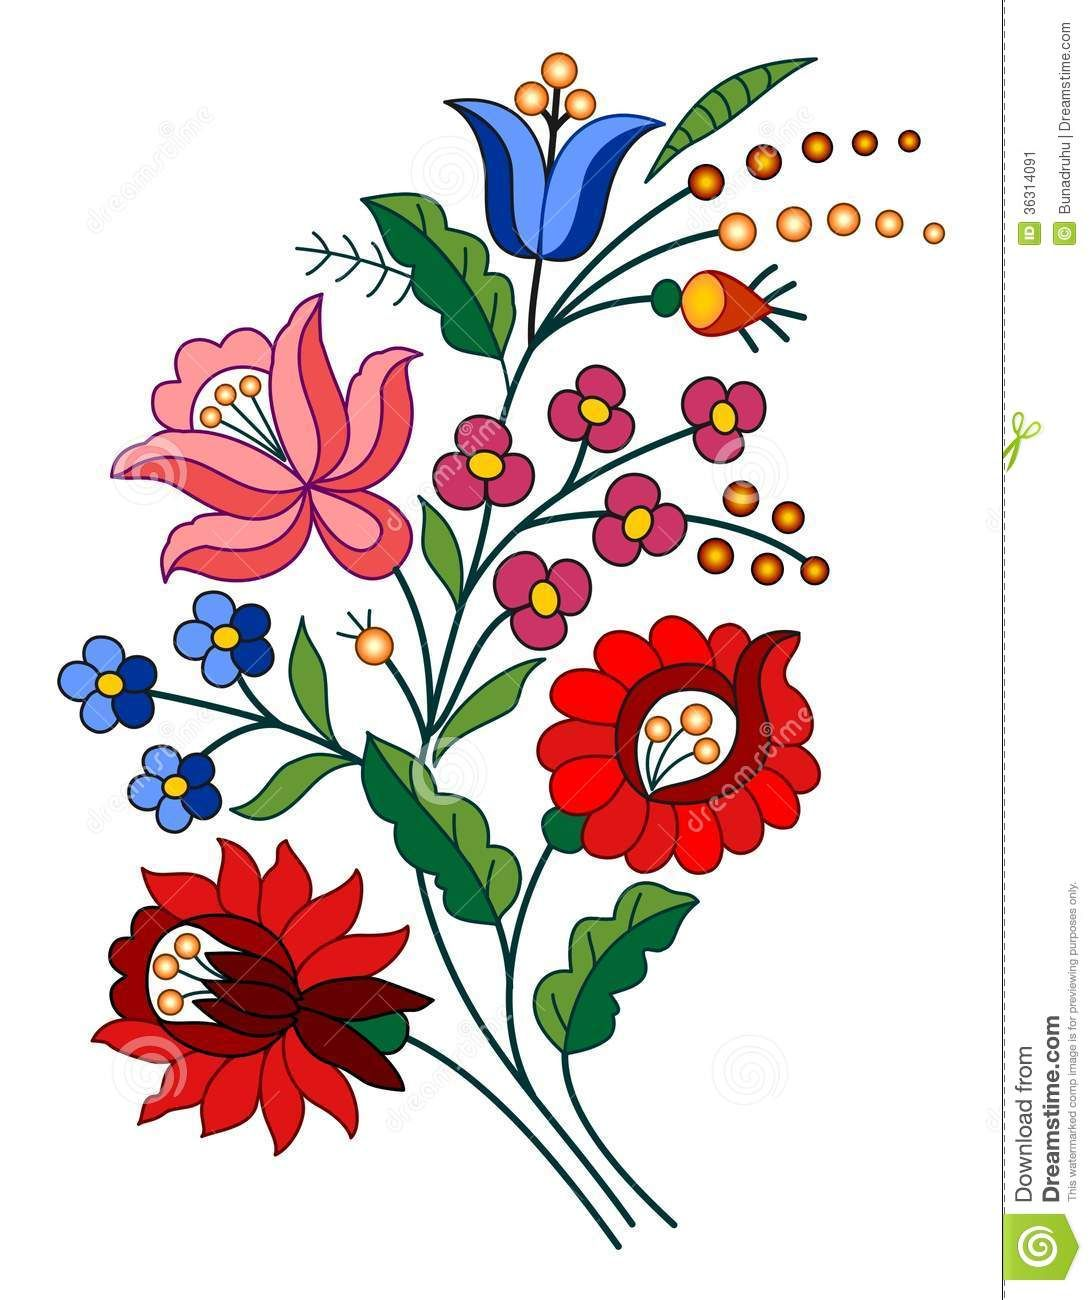 Hungarian Folk Motif - Download From Over 41 Million High Quality ...